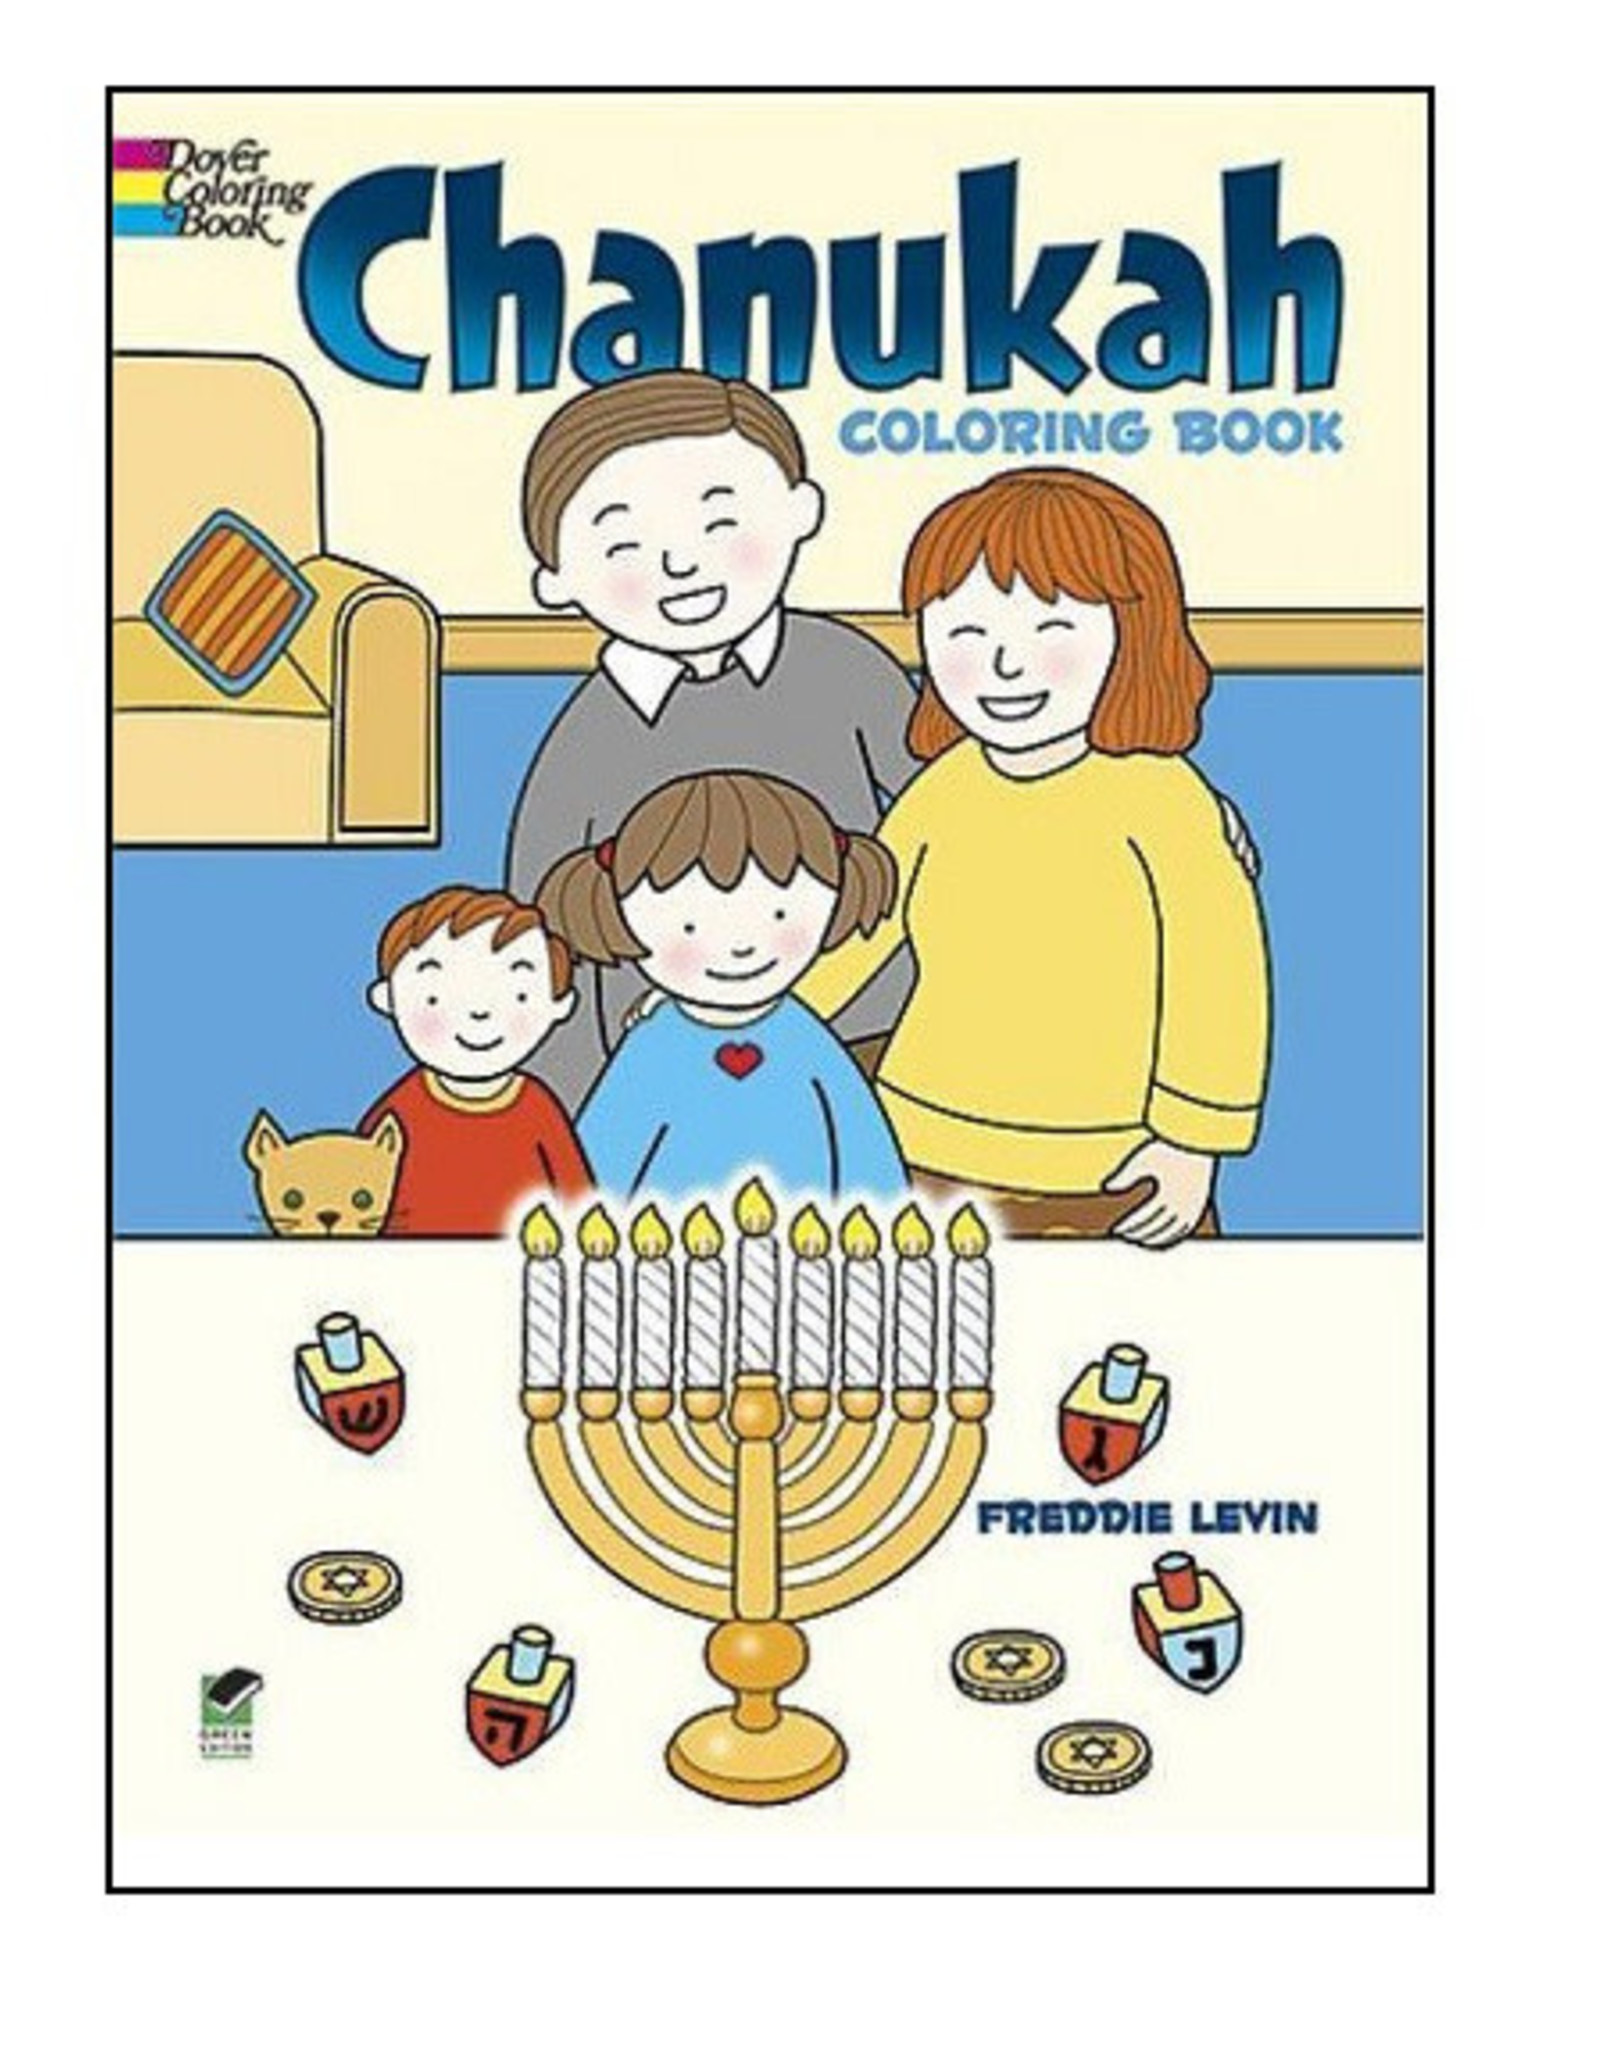 Dover Coloring Books Chanukah Coloring Book